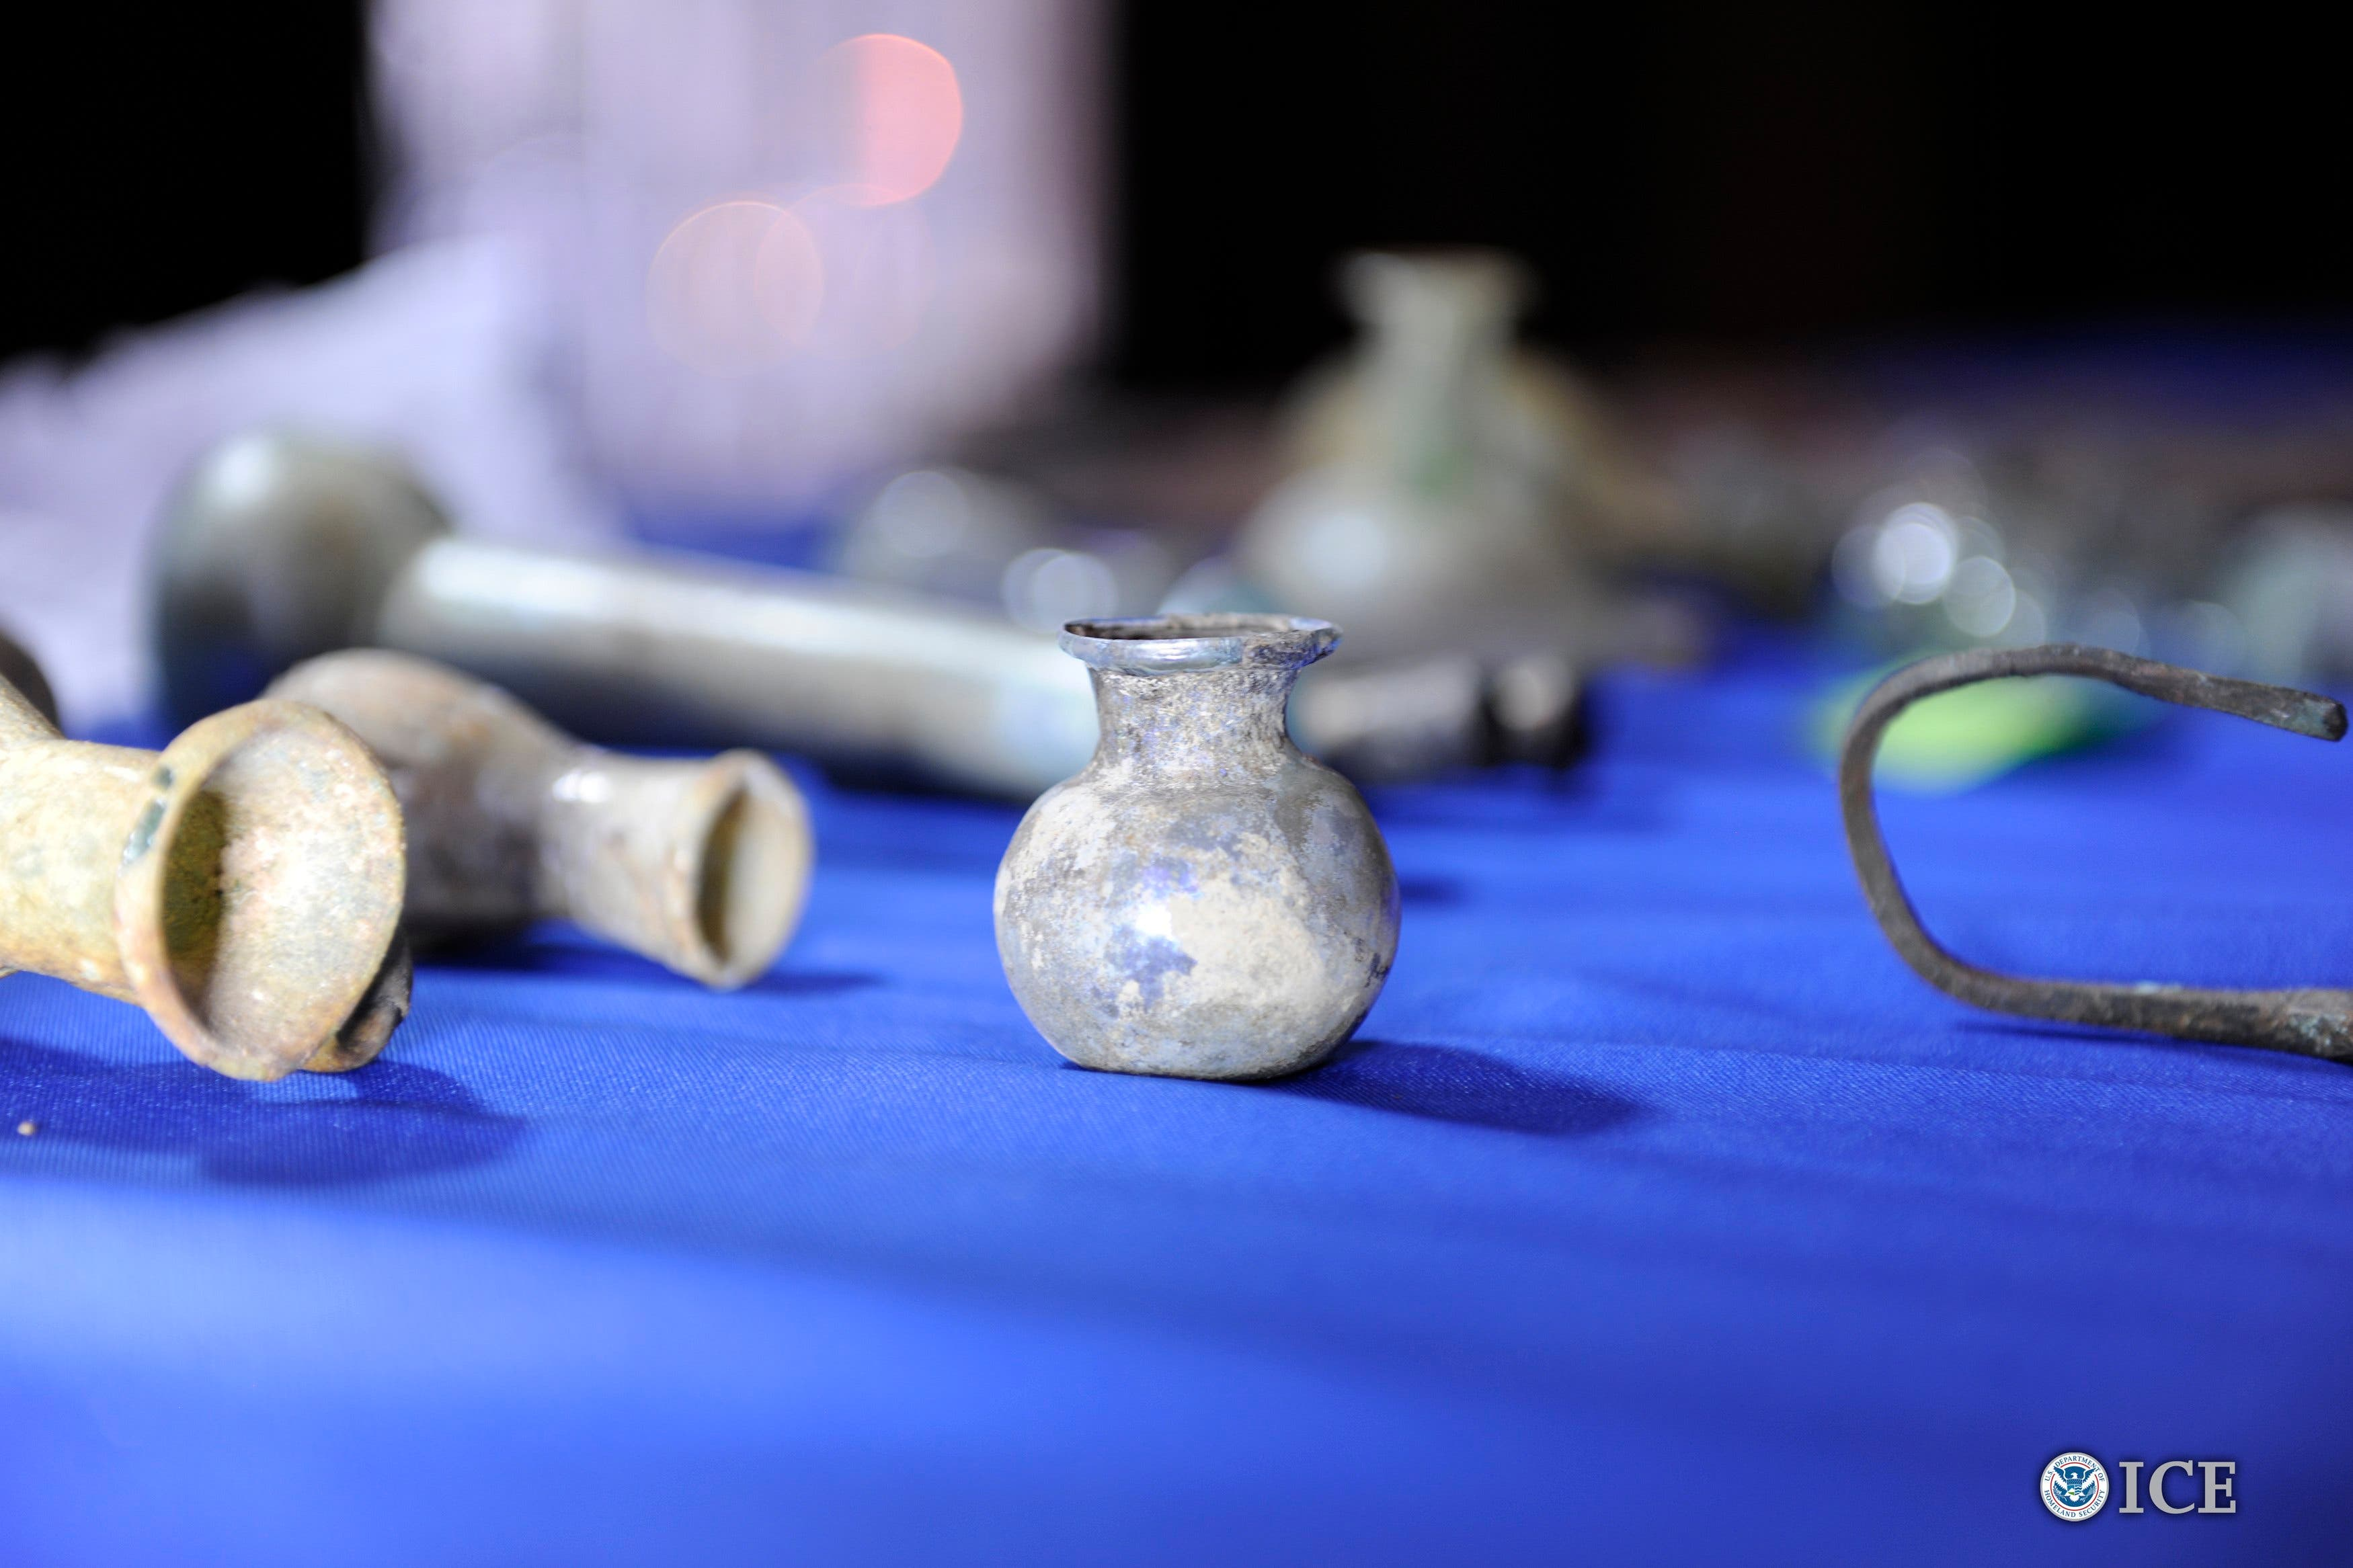 Some of the artifacts from more than 60 Iraqi cultural treasures illegally smuggled into the United States that were returned to Iraq. (Reuters).